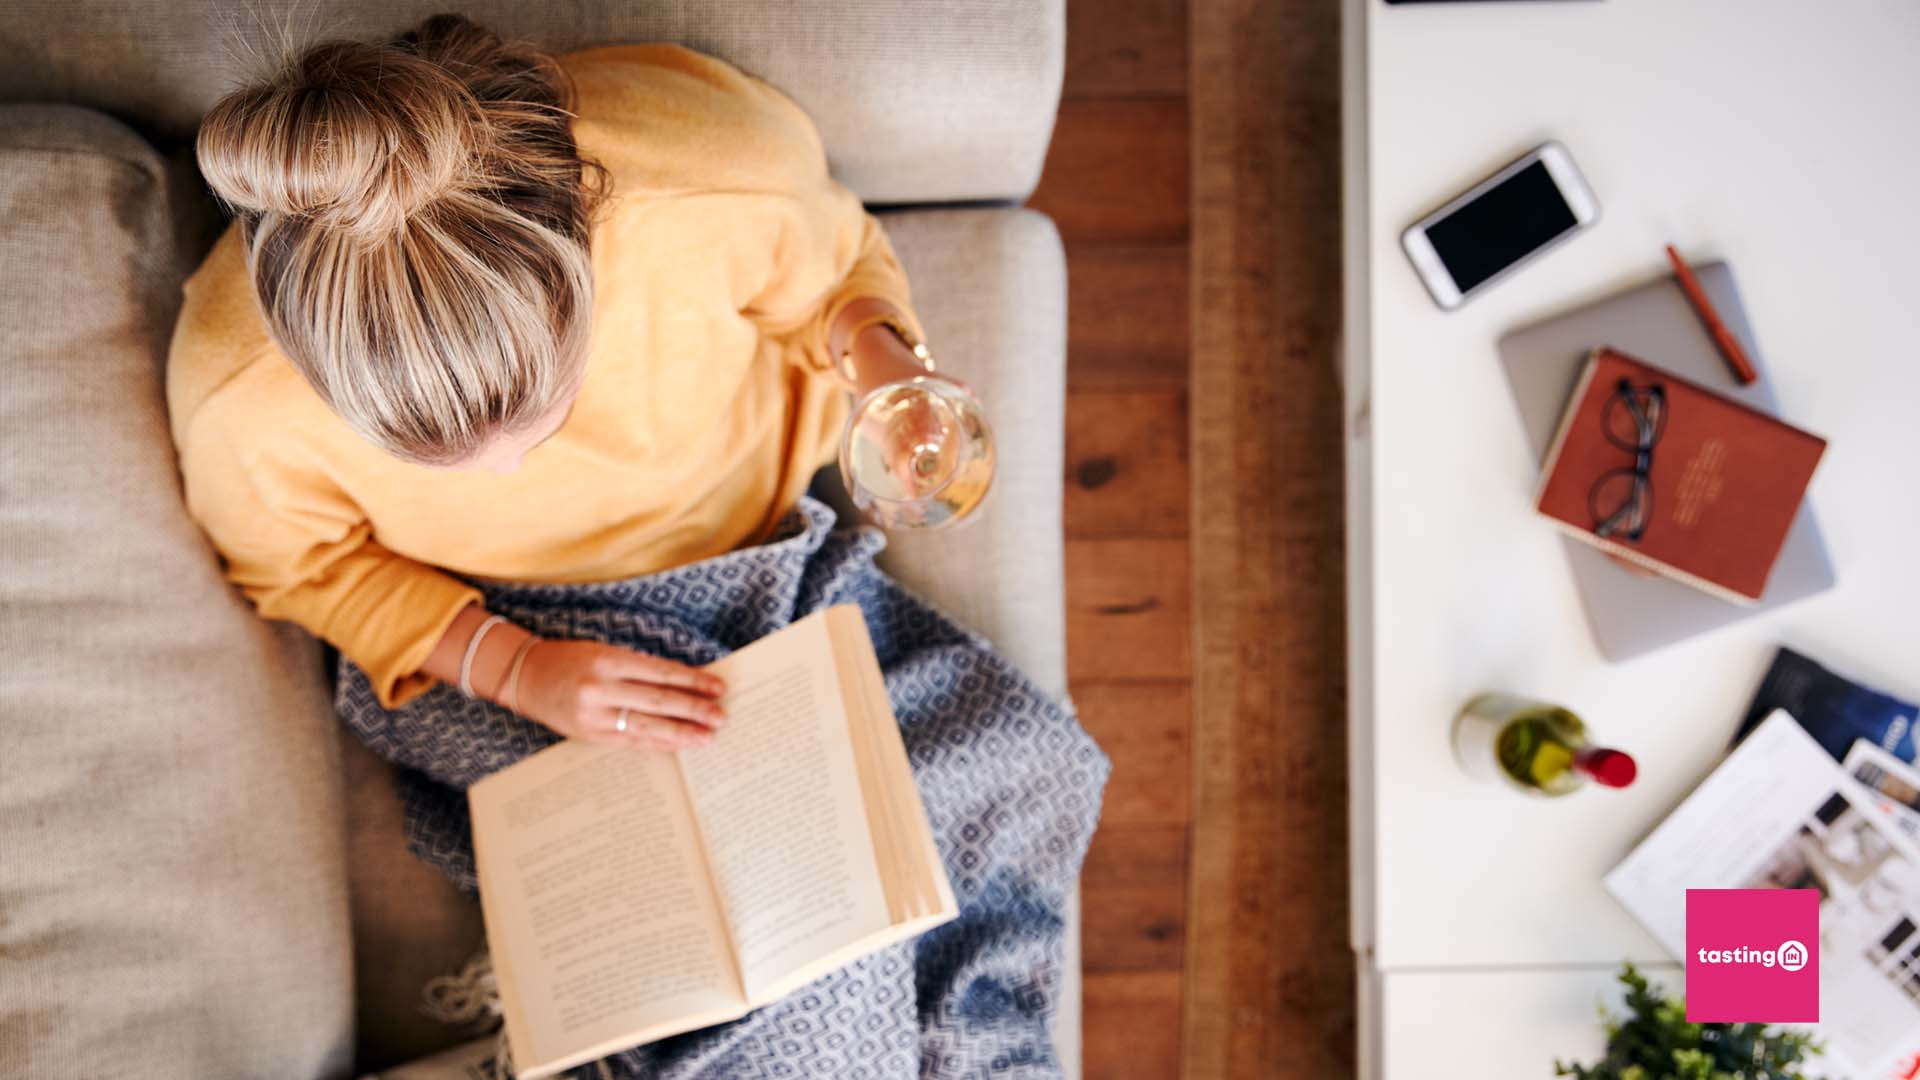 picture of a woman drinking wine and reading a book on the sofa